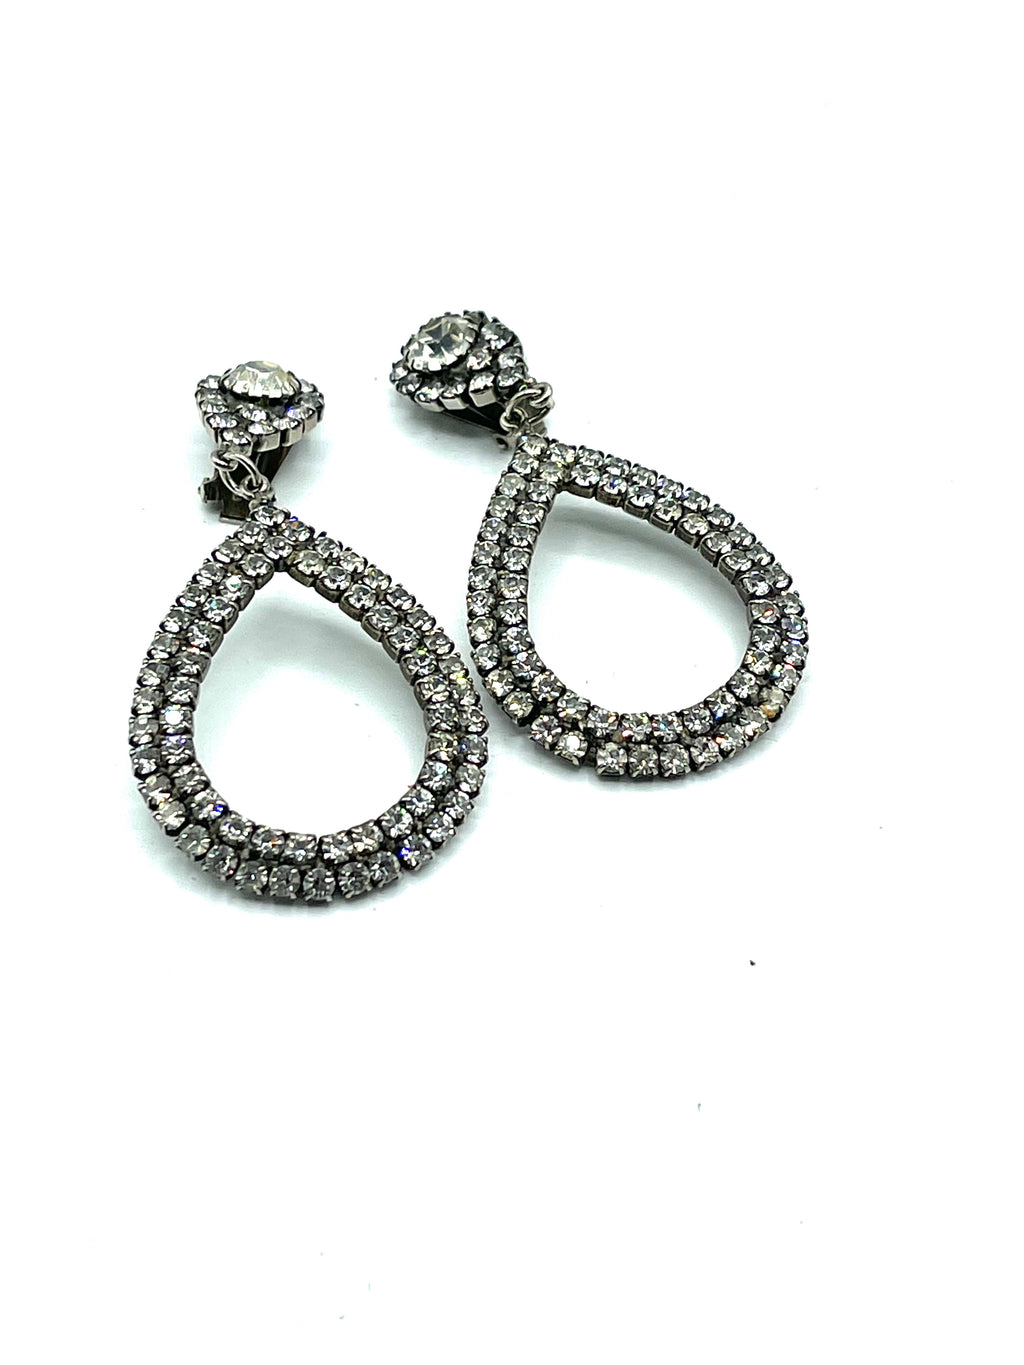 60s Showgirl Rhinestone Teardrop Earrings FRONT 1 of 3